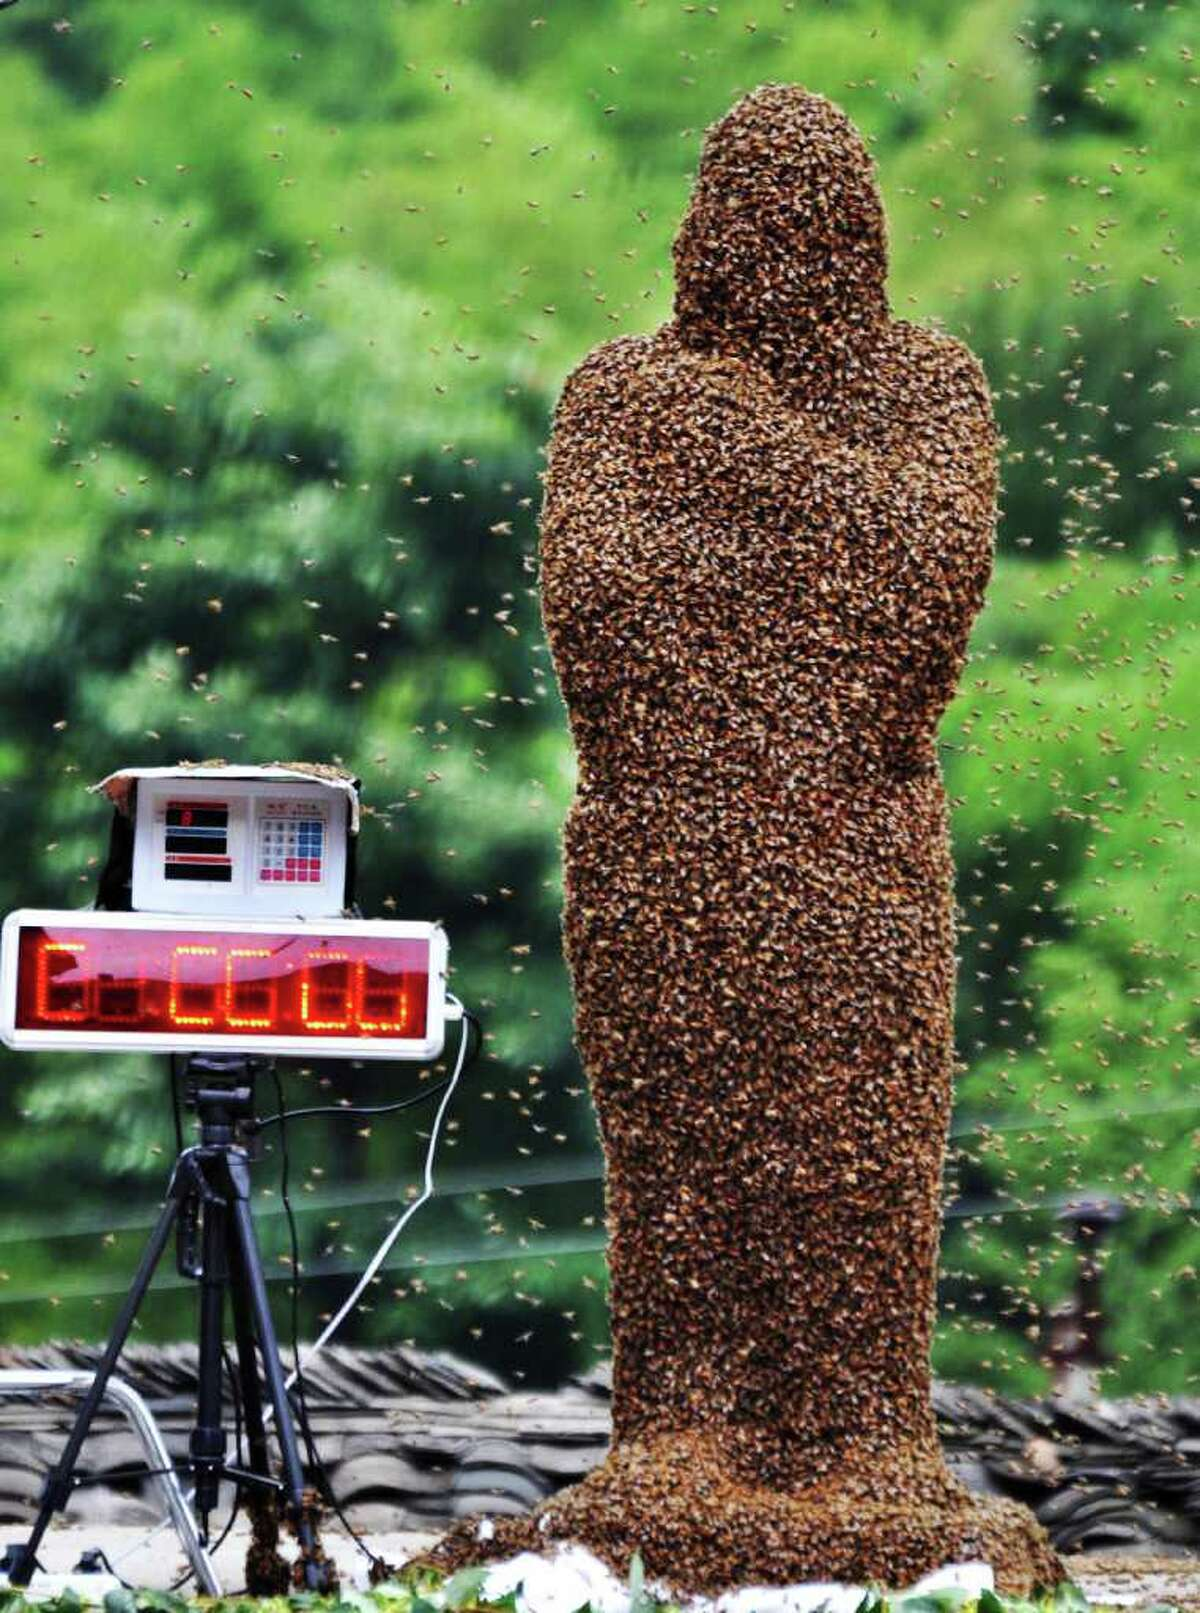 In this photo released by Xinhua News Agency, 42-year-old beekeeper Wang Dalin is covered with bees during a contest against 20-year-old Lu Kongjiang, also a beekeeper, in Longhui County of Shaoyang City, central China's Hunan Province, Sunday, July 17, 2011. Wang finally won in the hour-long duel since 26 kilograms (57 pounds) of bees covered his body, Xinhua said. (AP Photo/Xinhua/Lu Jianshe) NO SALES